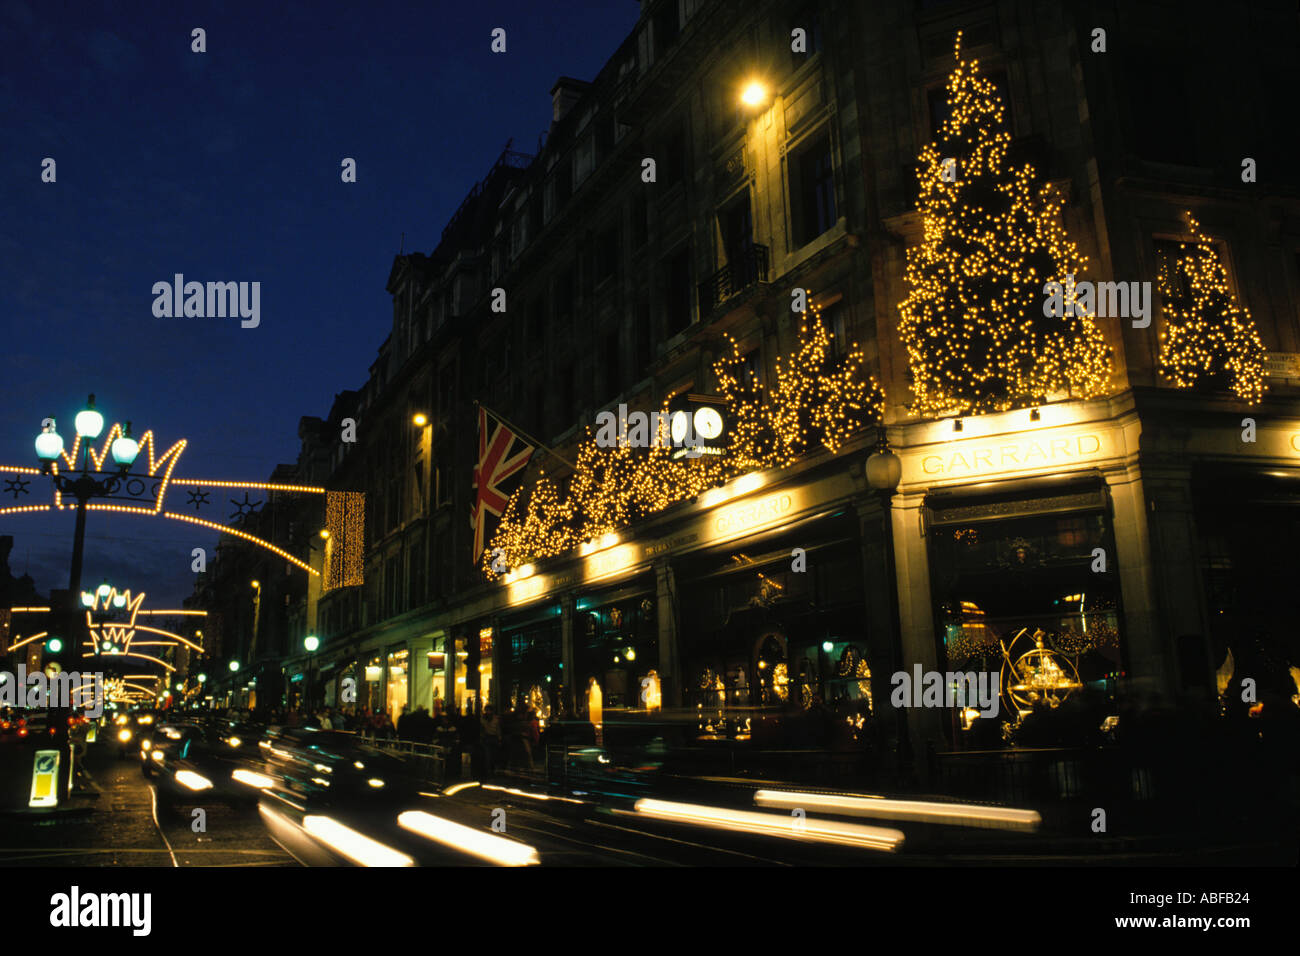 garrards shop in regent street christmas lights and christmas tree above a retail shop london england